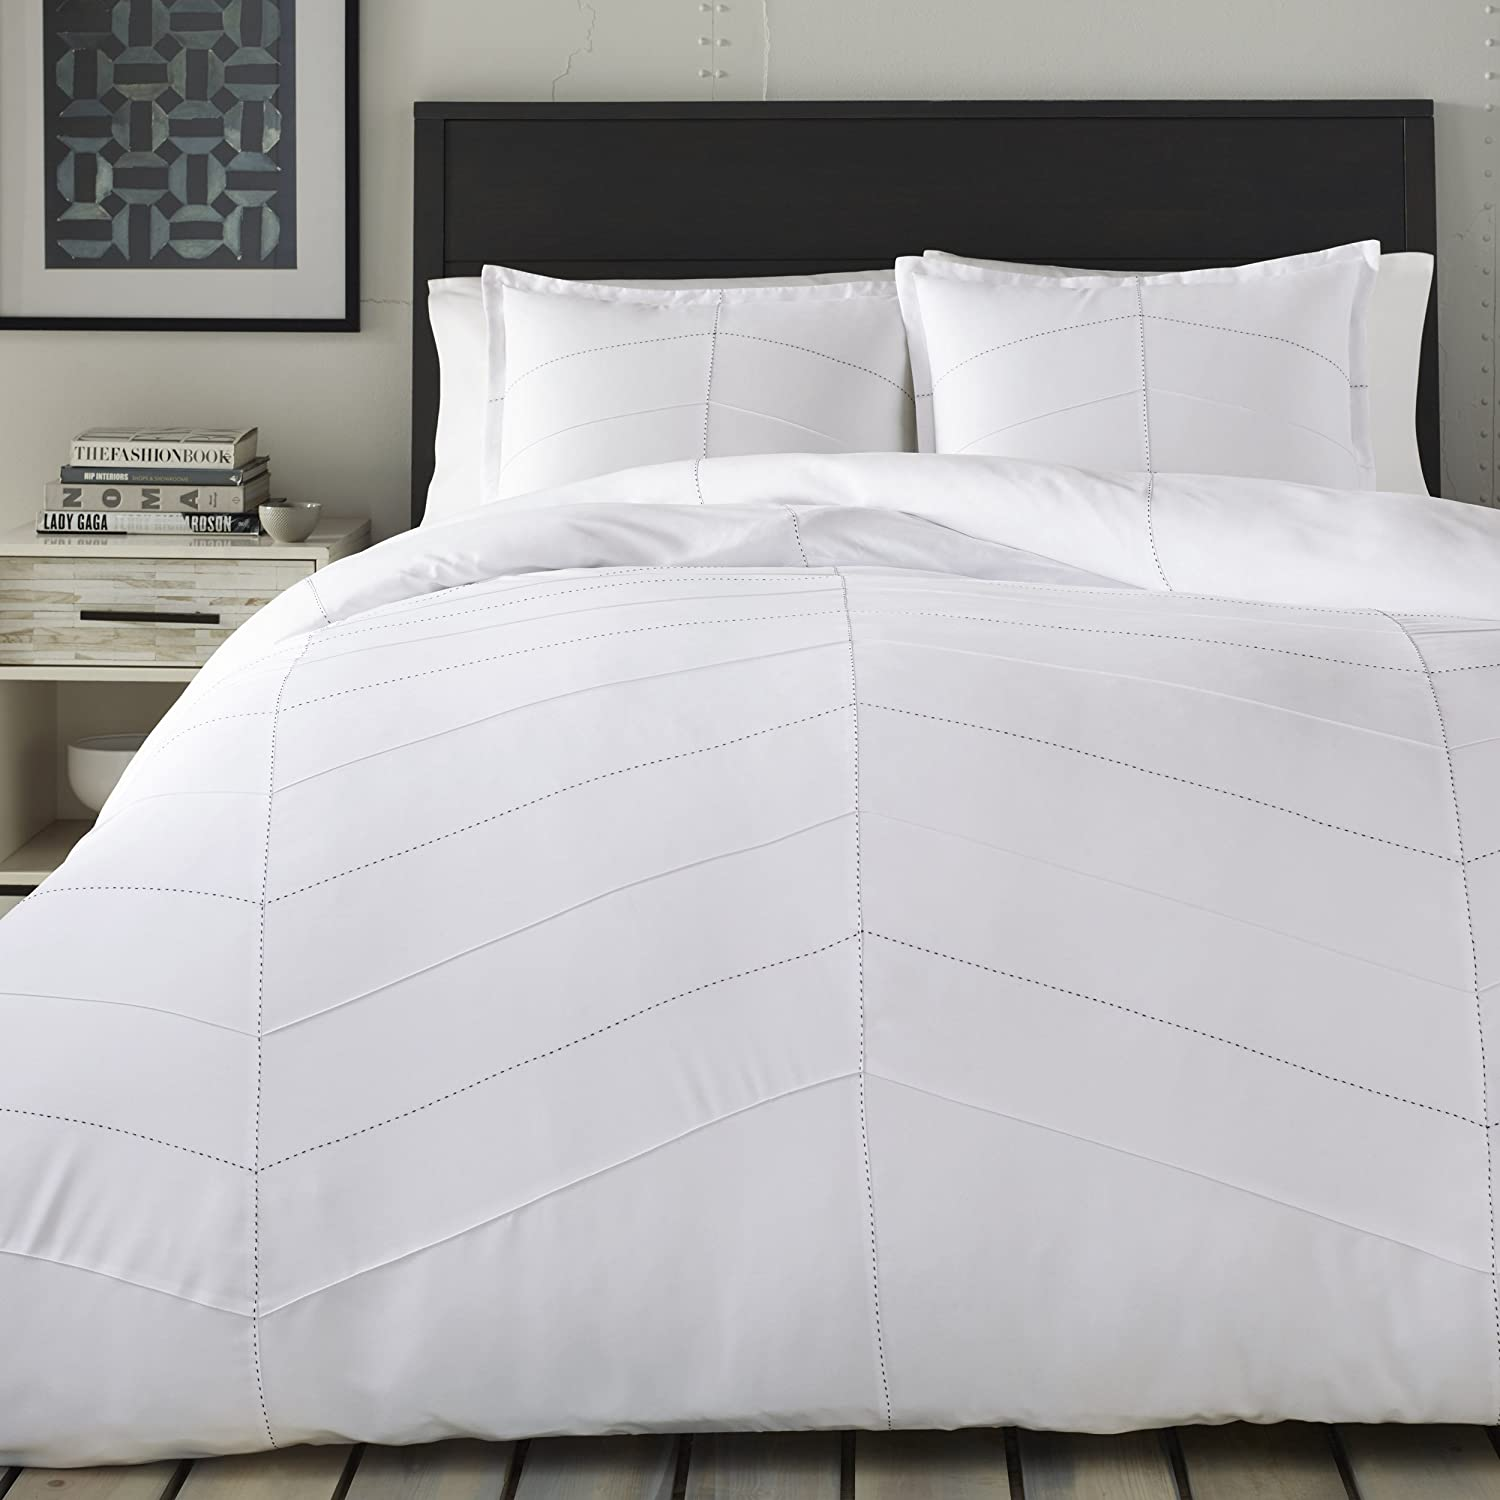 City Scene Courtney Duvet Cover Set, Twin, White Revman International 221928